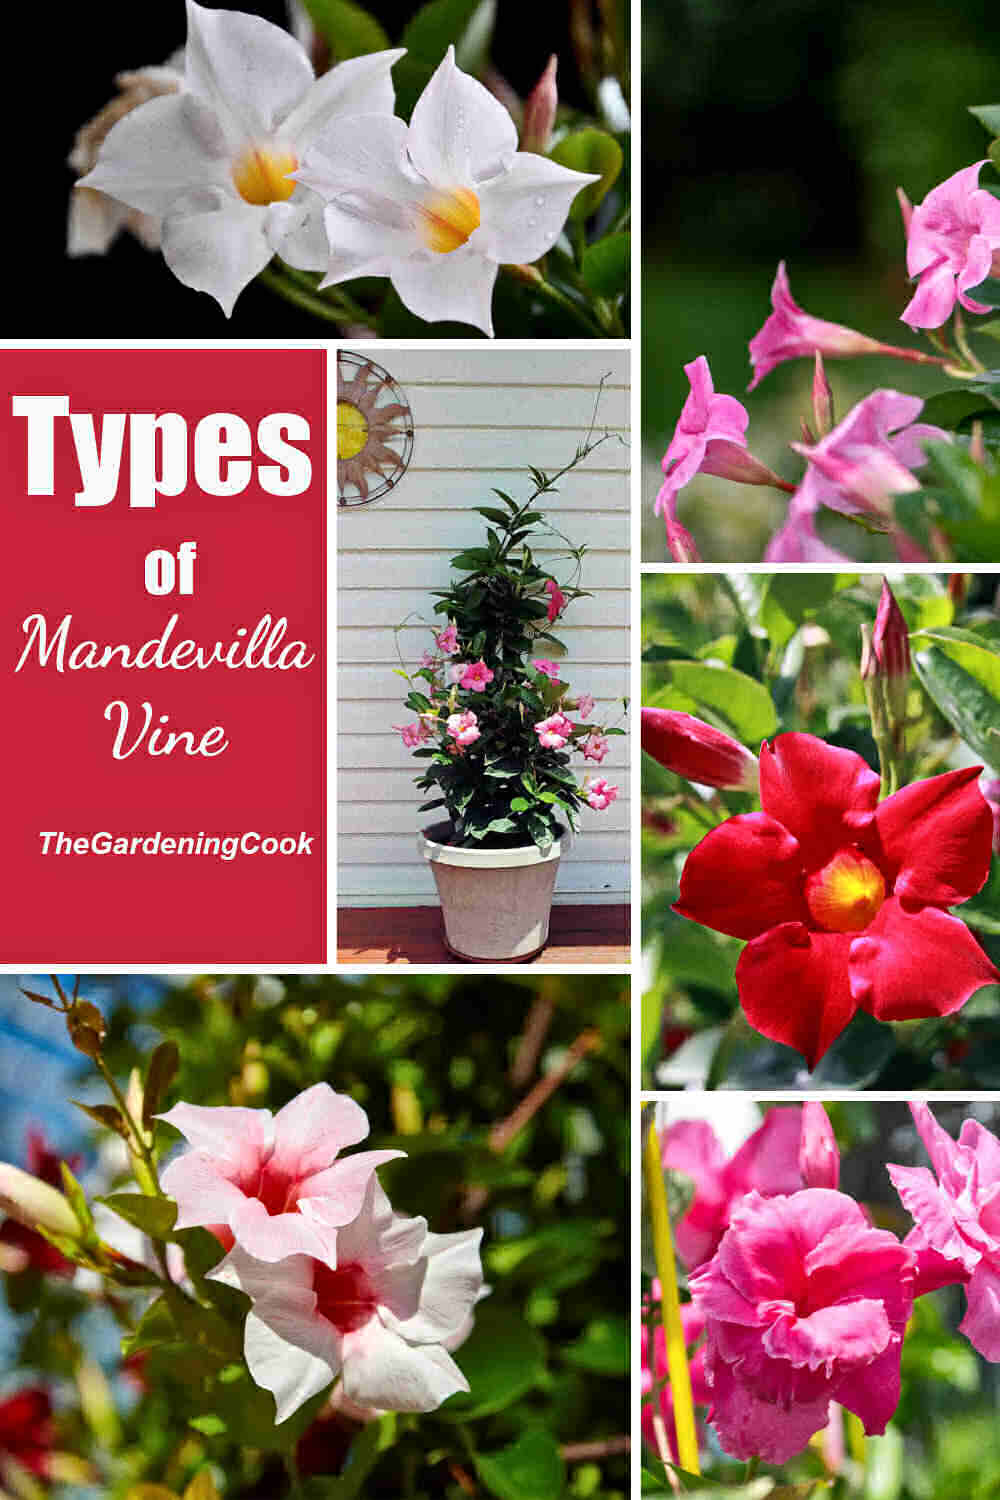 Varieties of mandevilla in a collage with words Types of mandevilla vine.